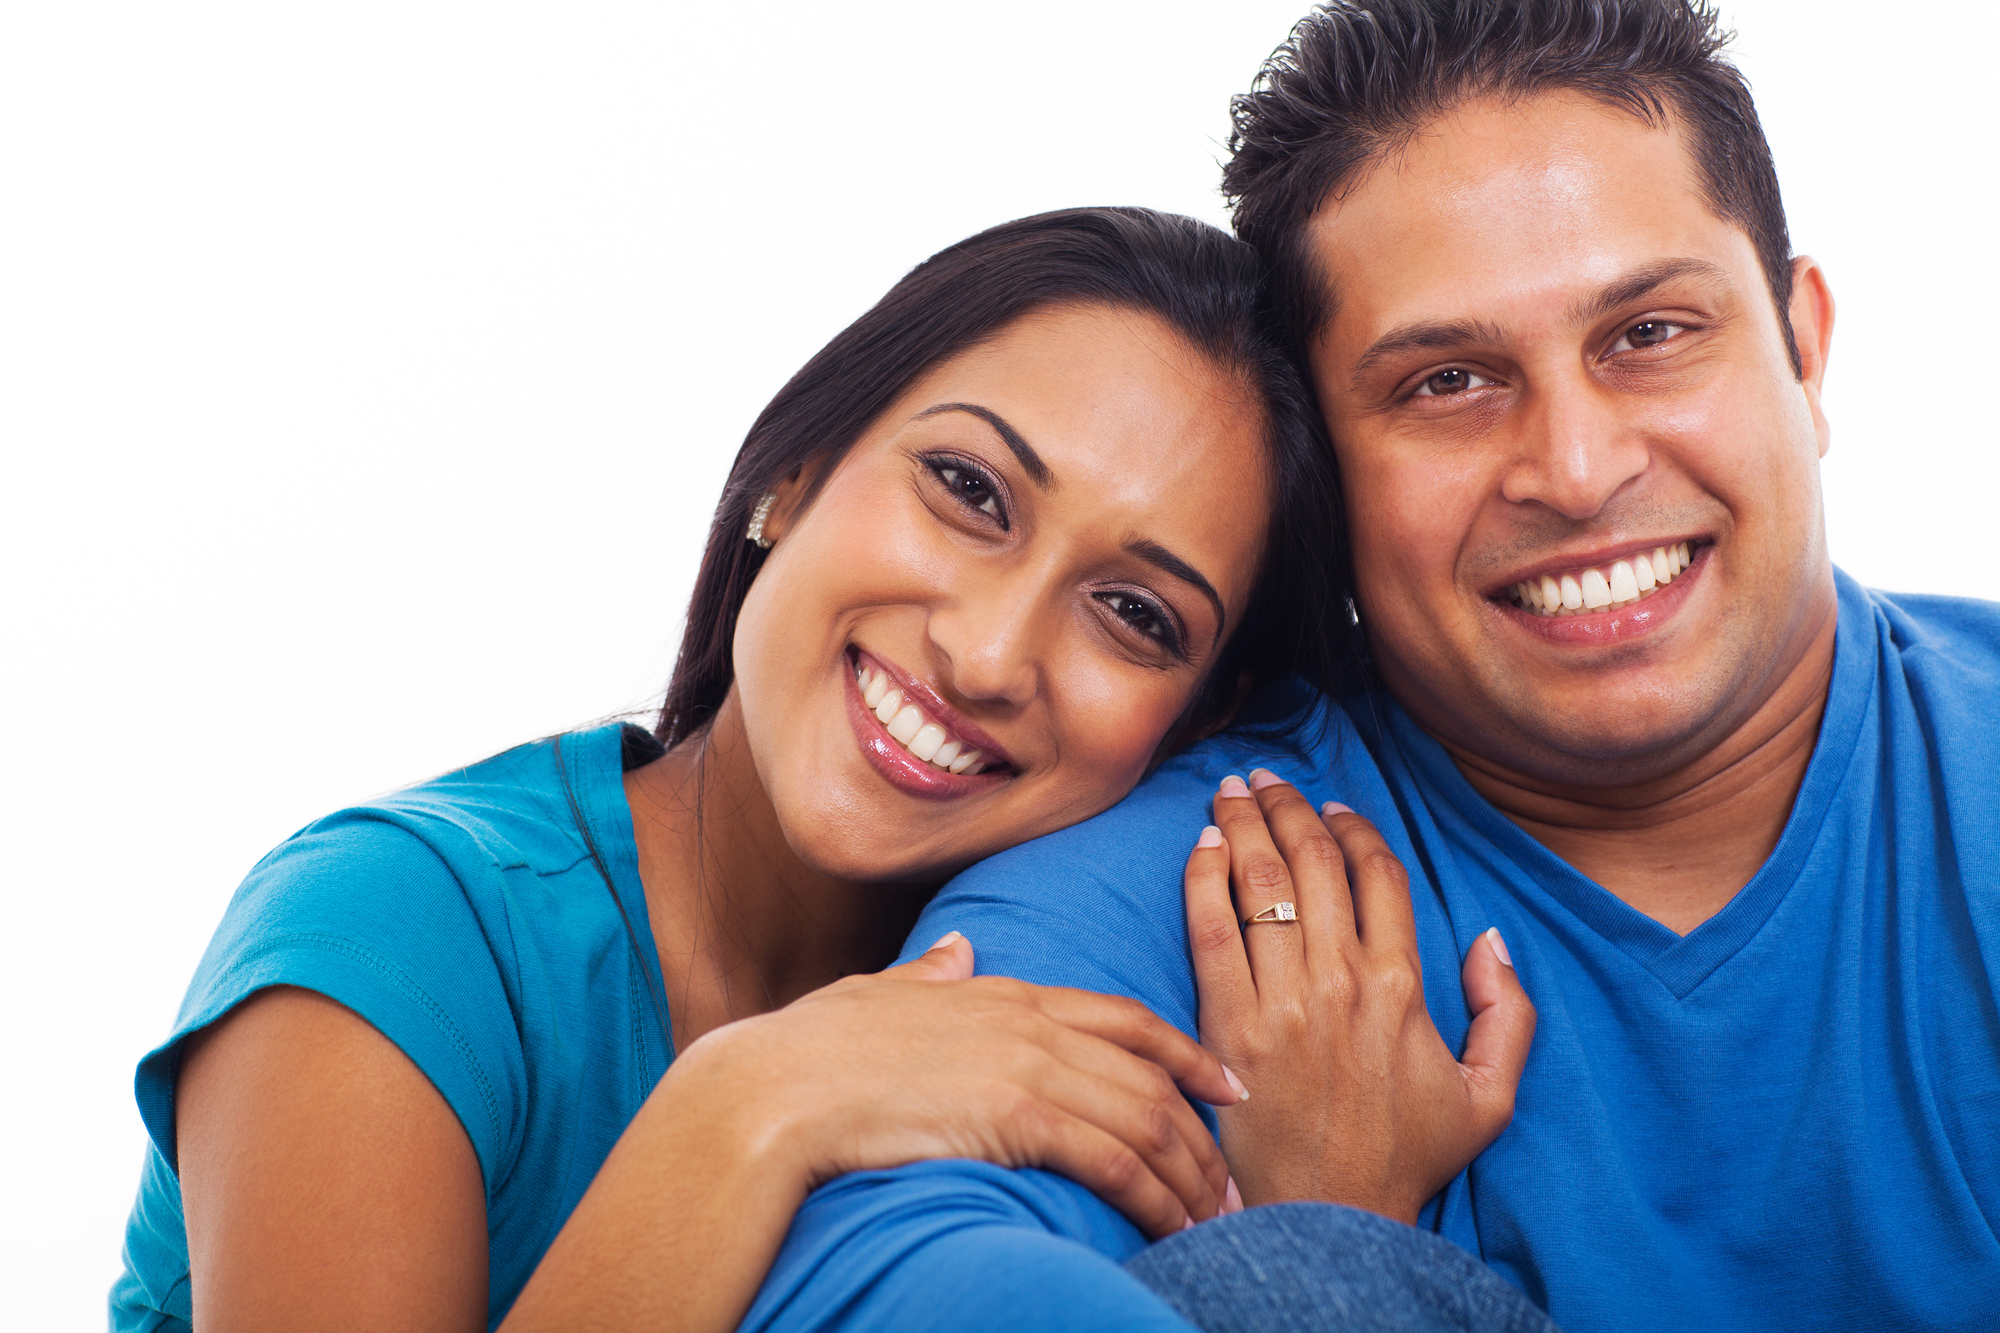 5-arousing-ways-you-can-touch-your-spouse